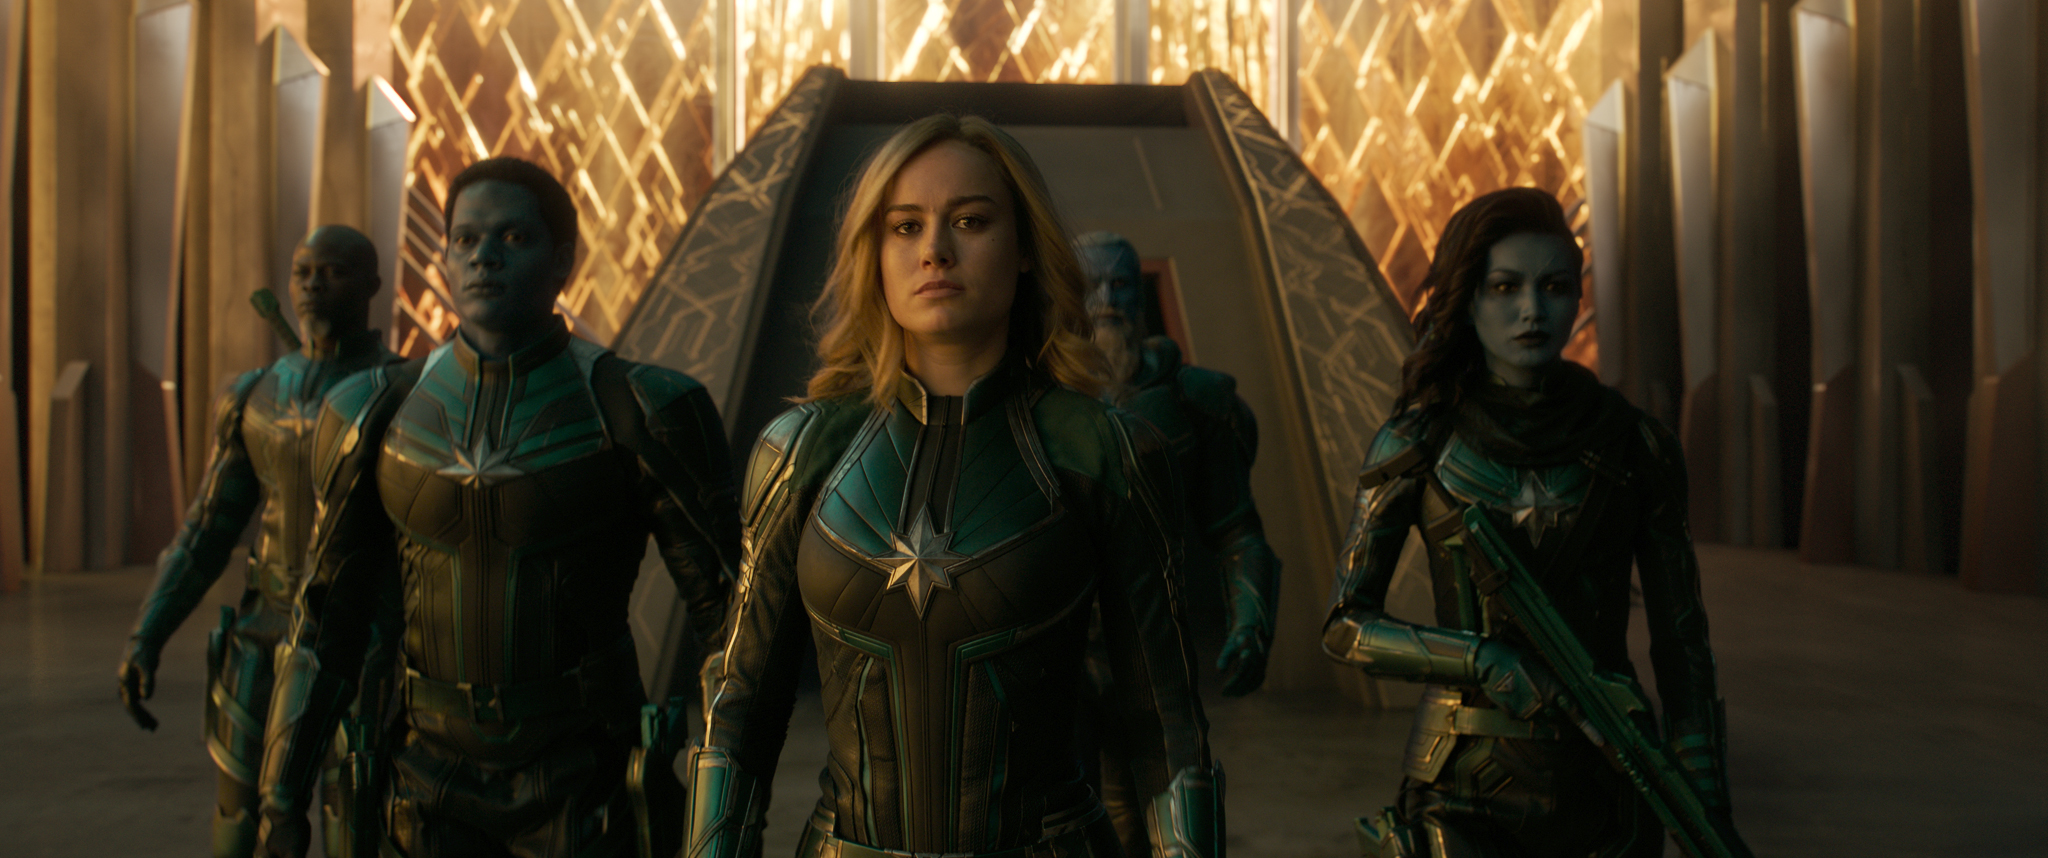 Starforce Uniform Marvel Cinematic Universe Wiki Fandom Comic book lovers might have been surprised when carol danvers changes the color of her typically green, black, and silver kree suit in the final scenes of captain marvel. starforce uniform marvel cinematic universe wiki fandom